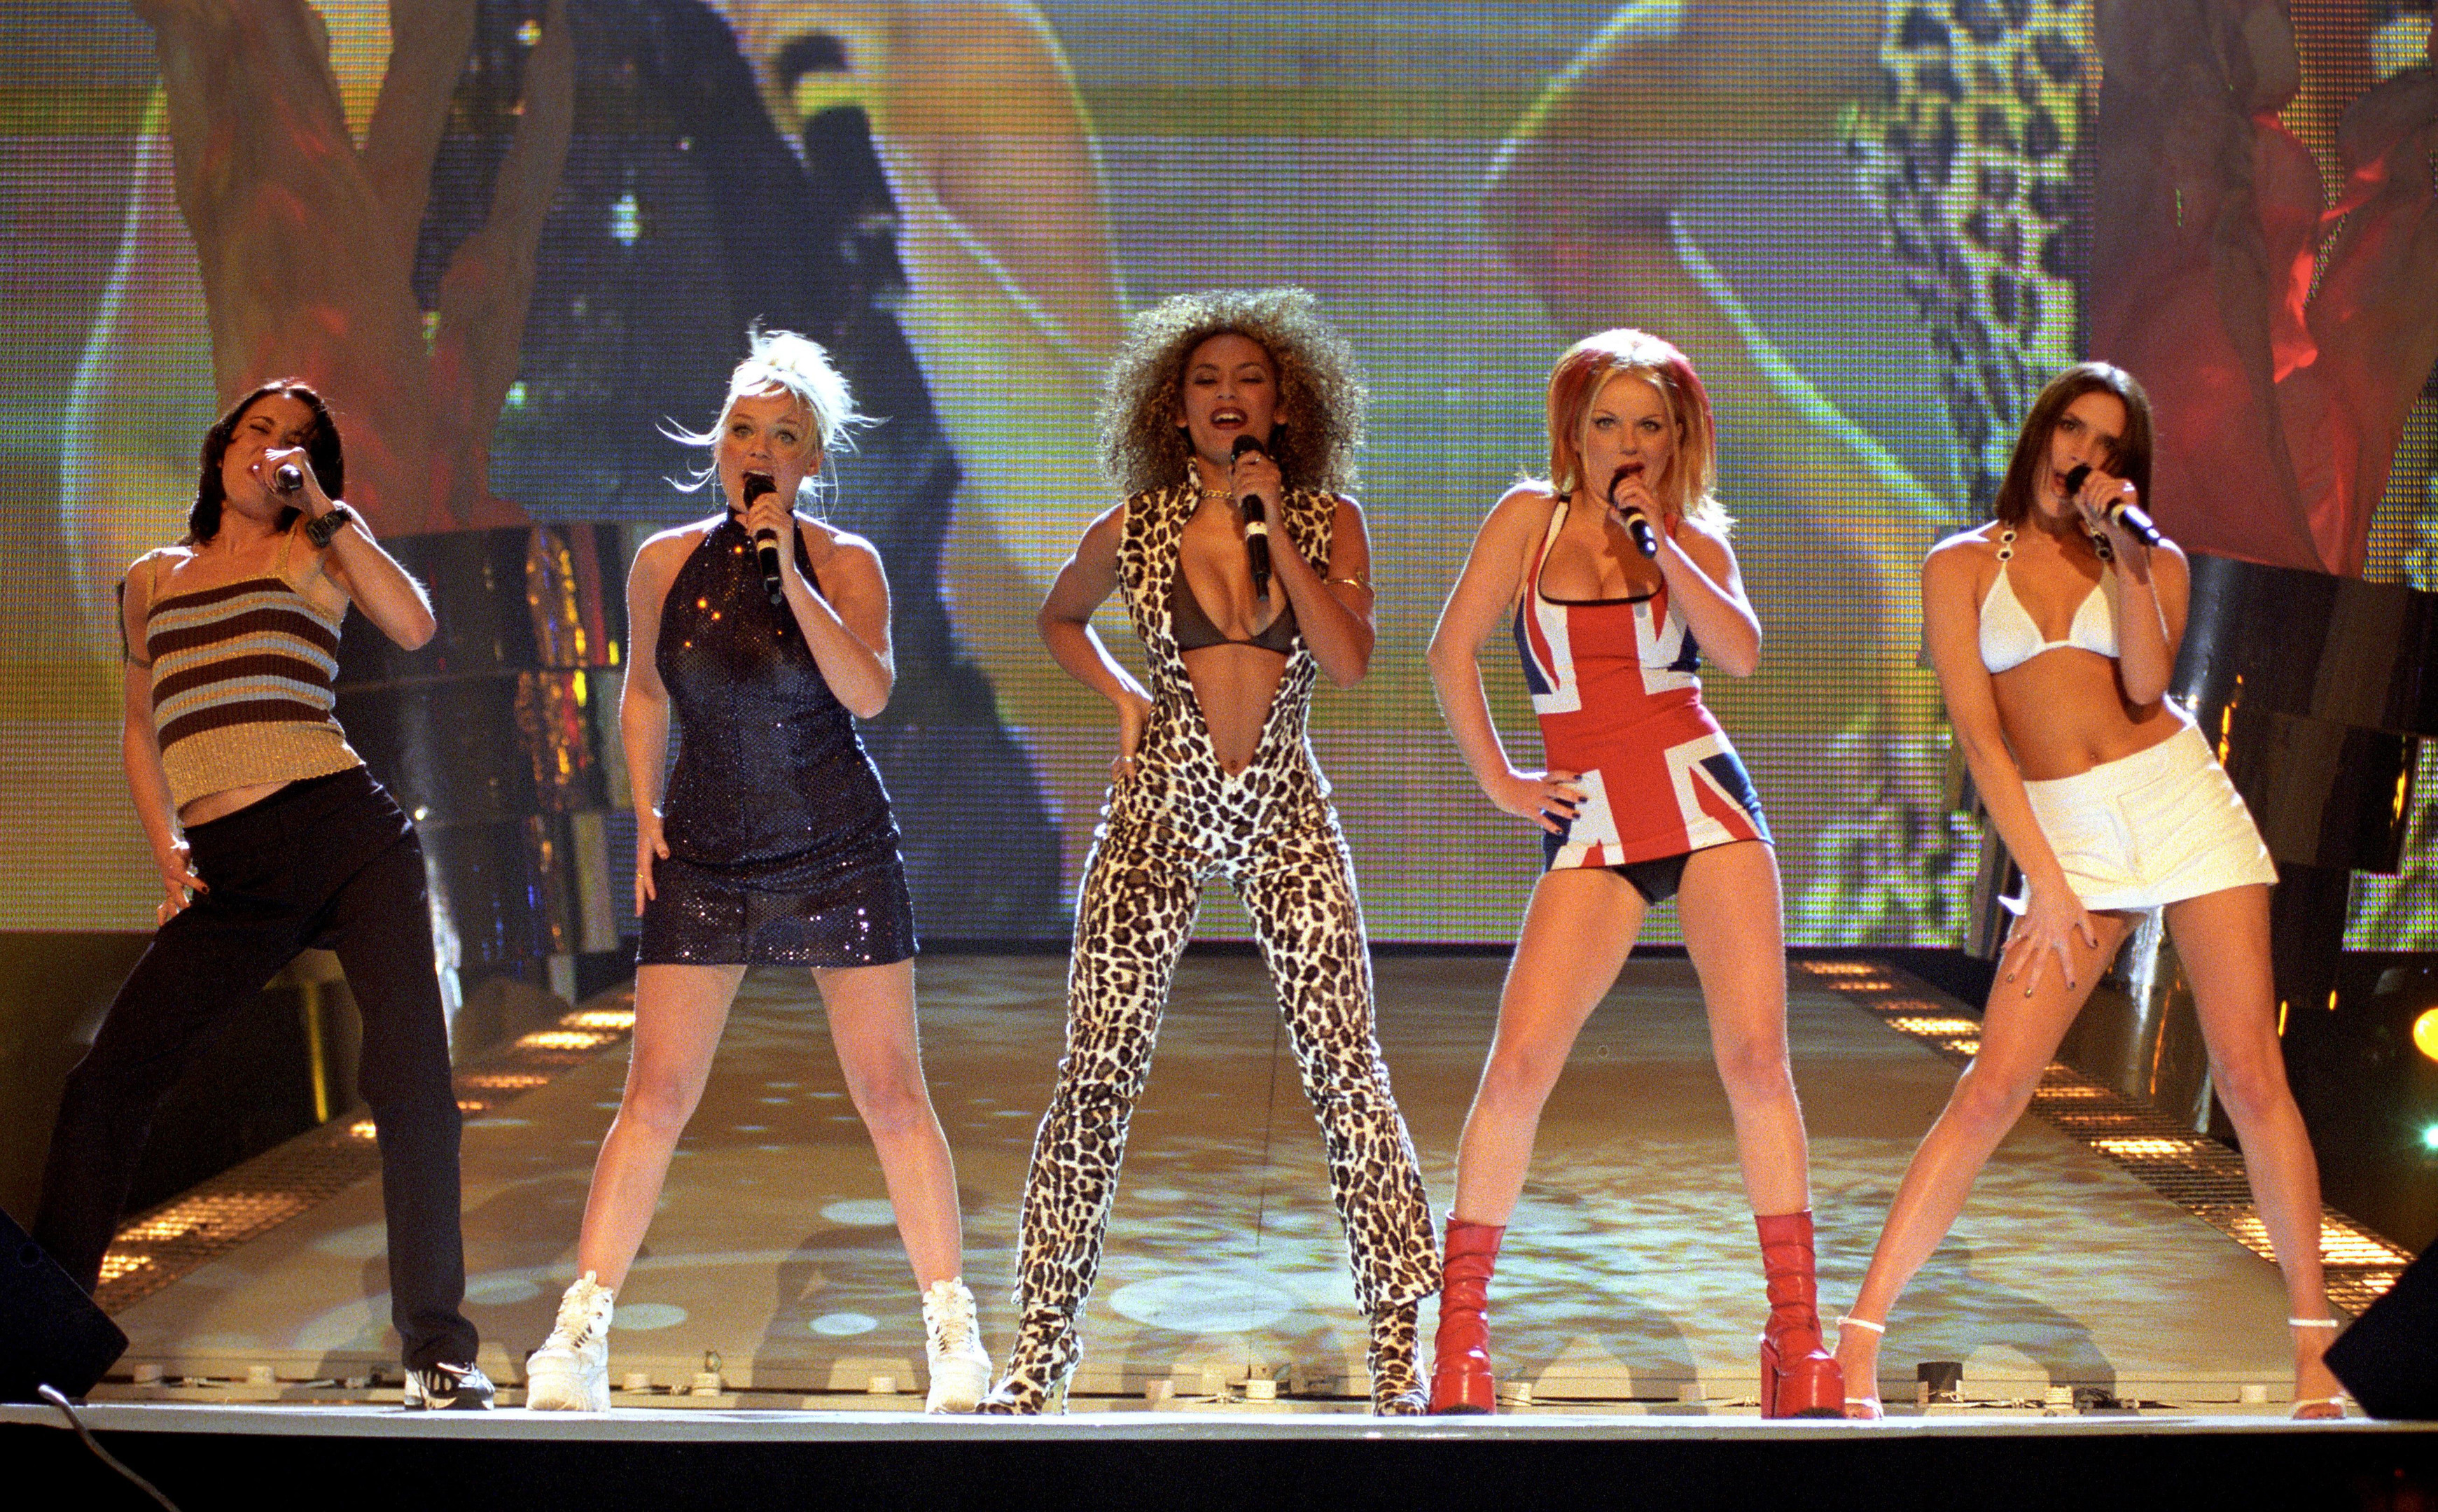 The Spice Girls perform on stage at the Brit Awards ceremony in London (PA)